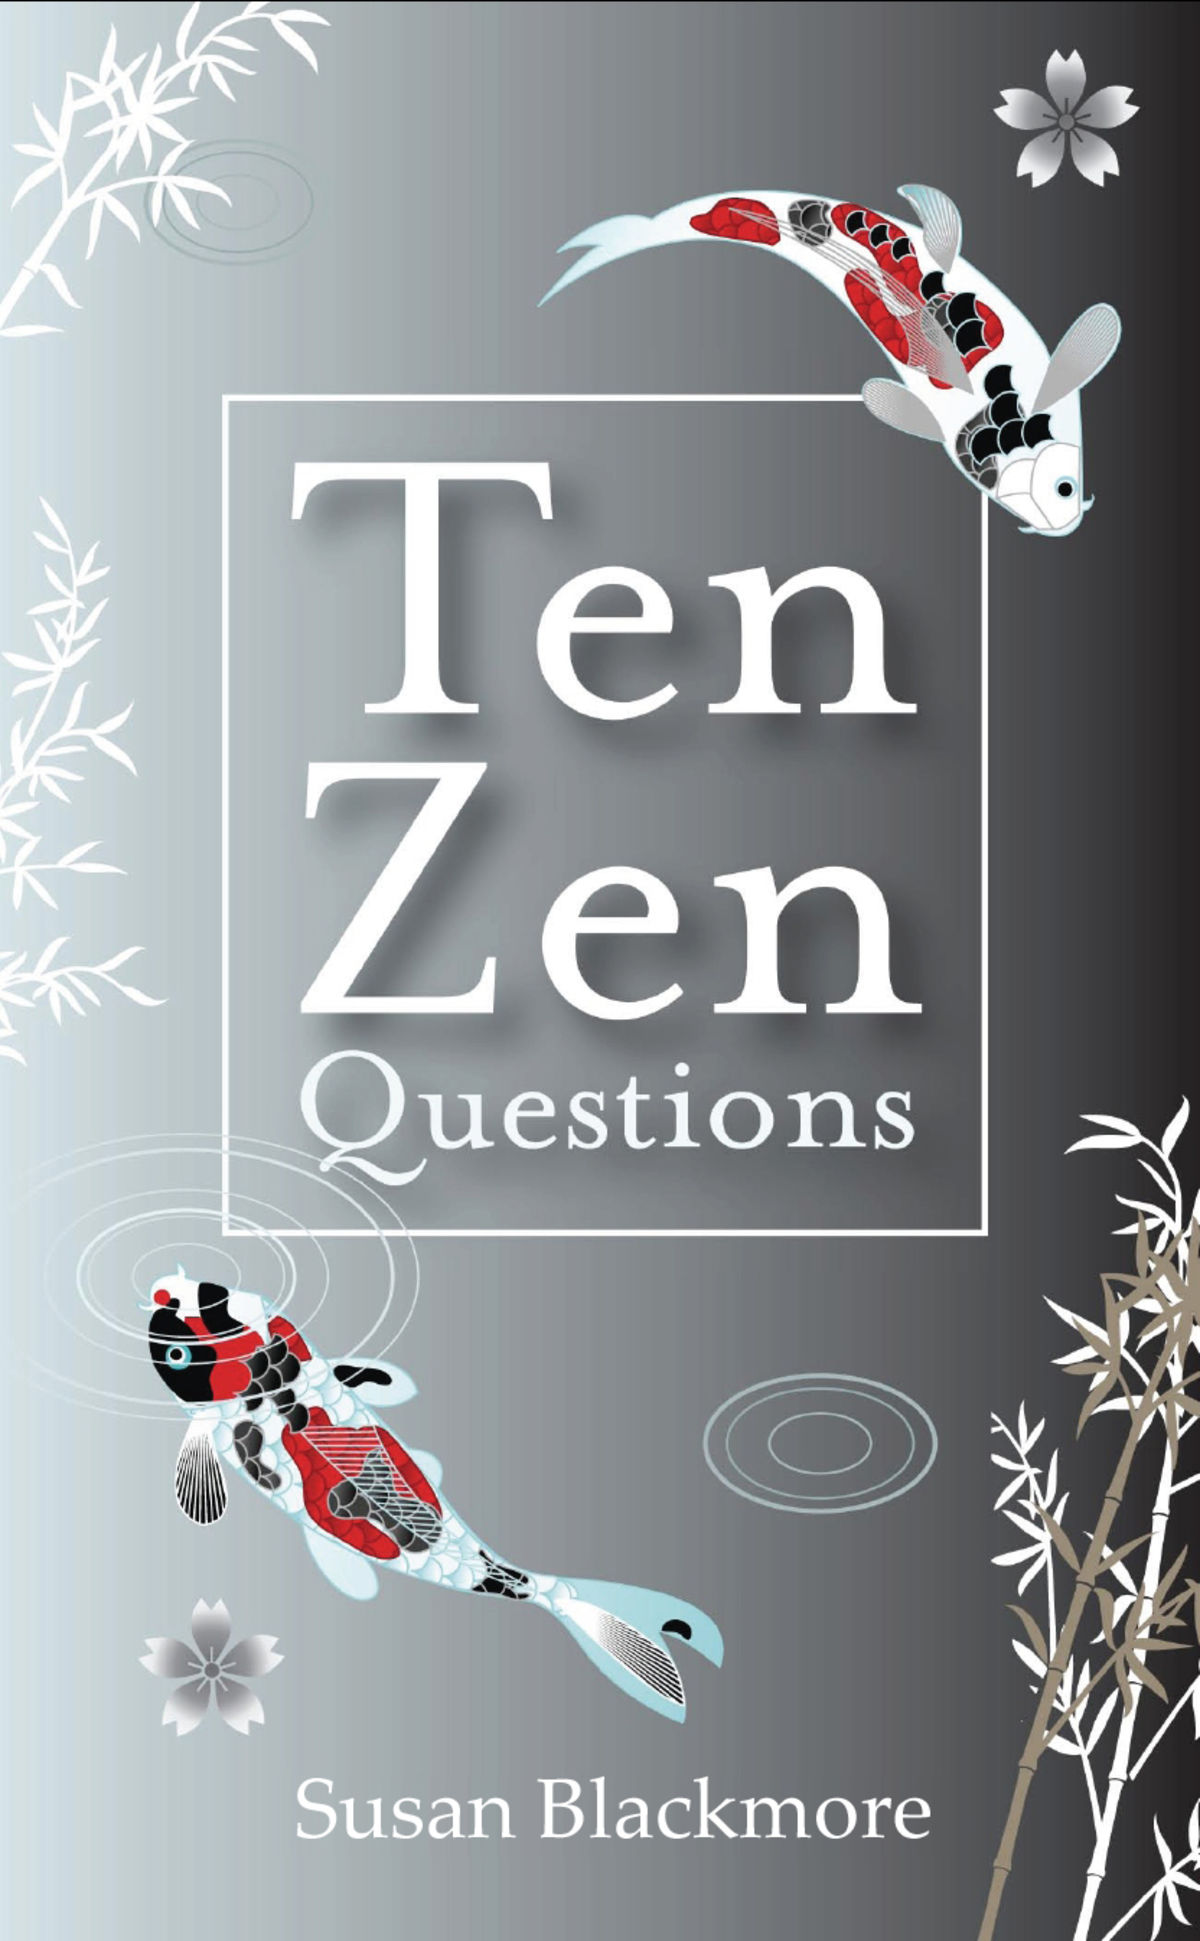 Asking the Zen Questions | Psychology Today